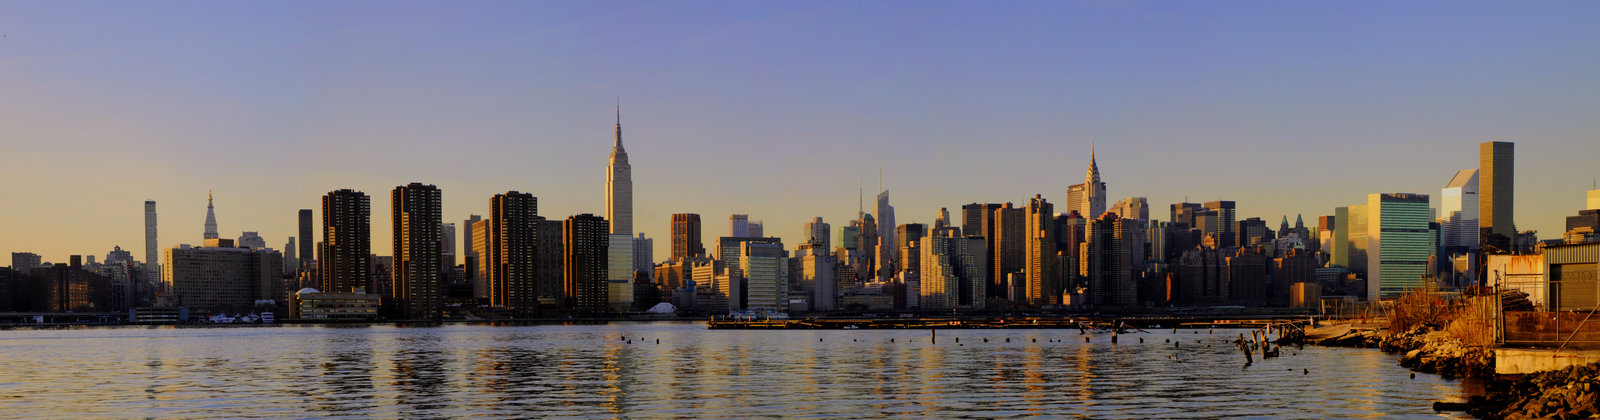 nyc_panoramic_by_lorddarphyve.jpg